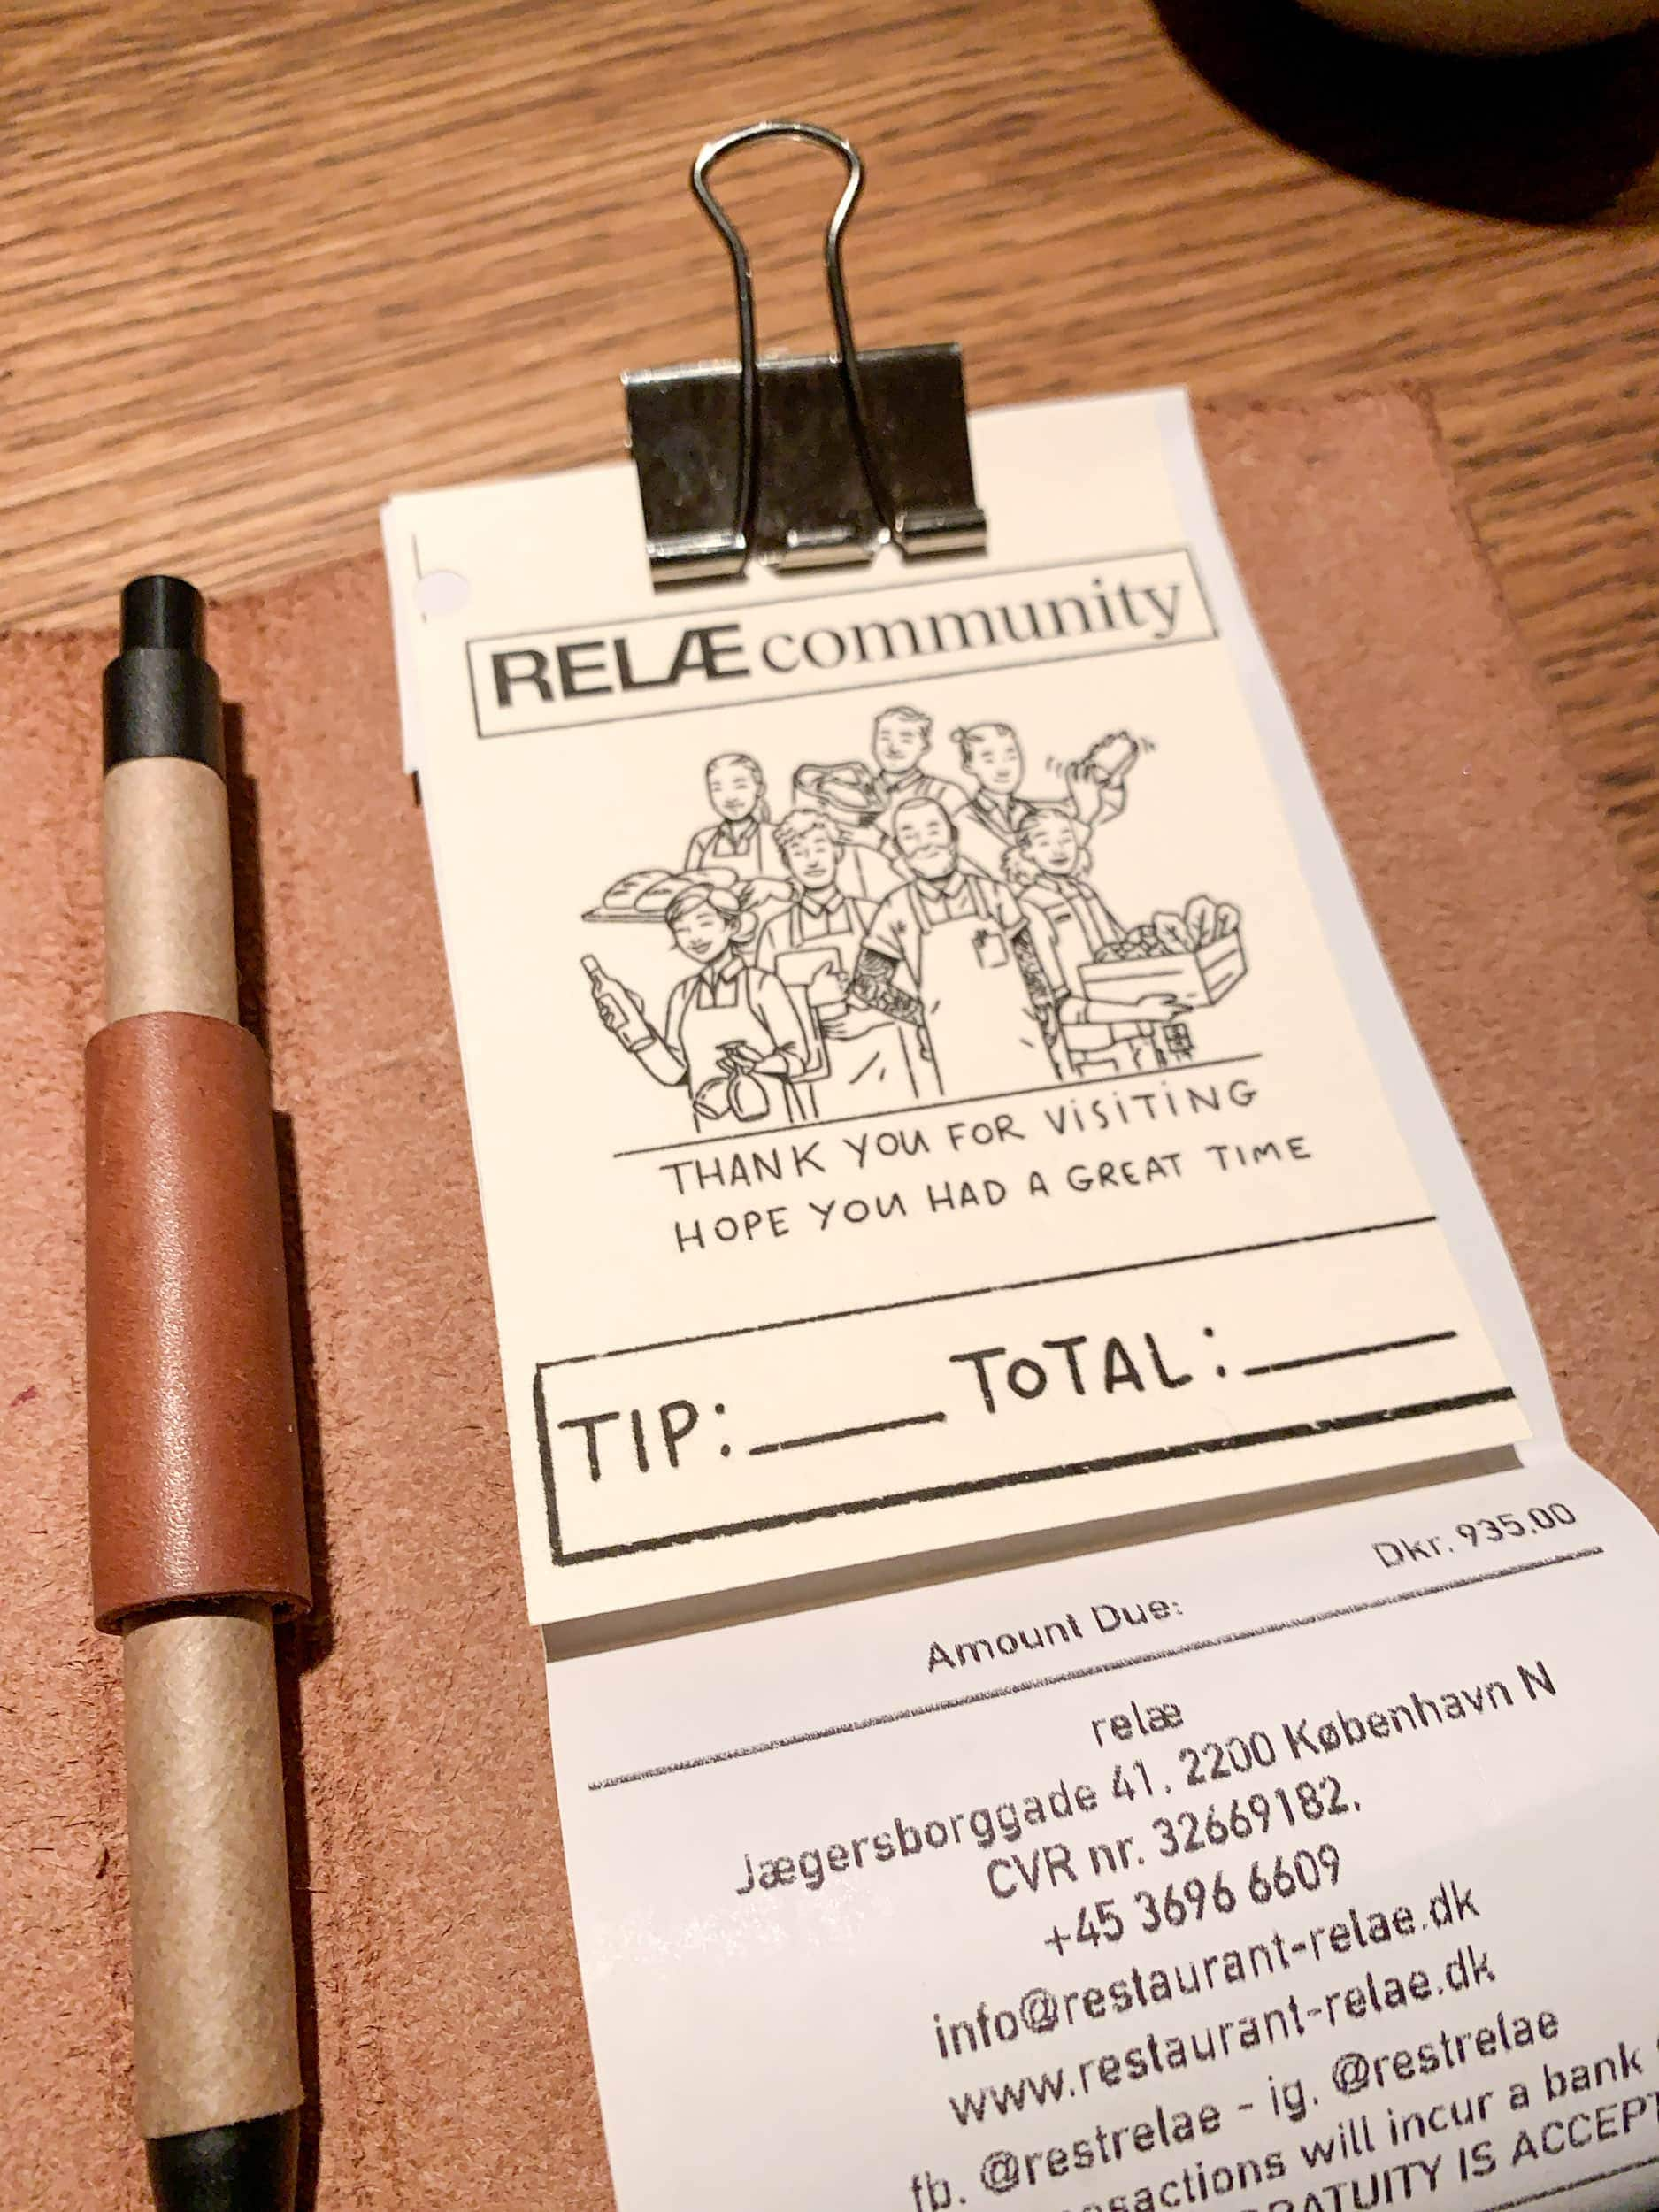 The check at Restaurant Relae